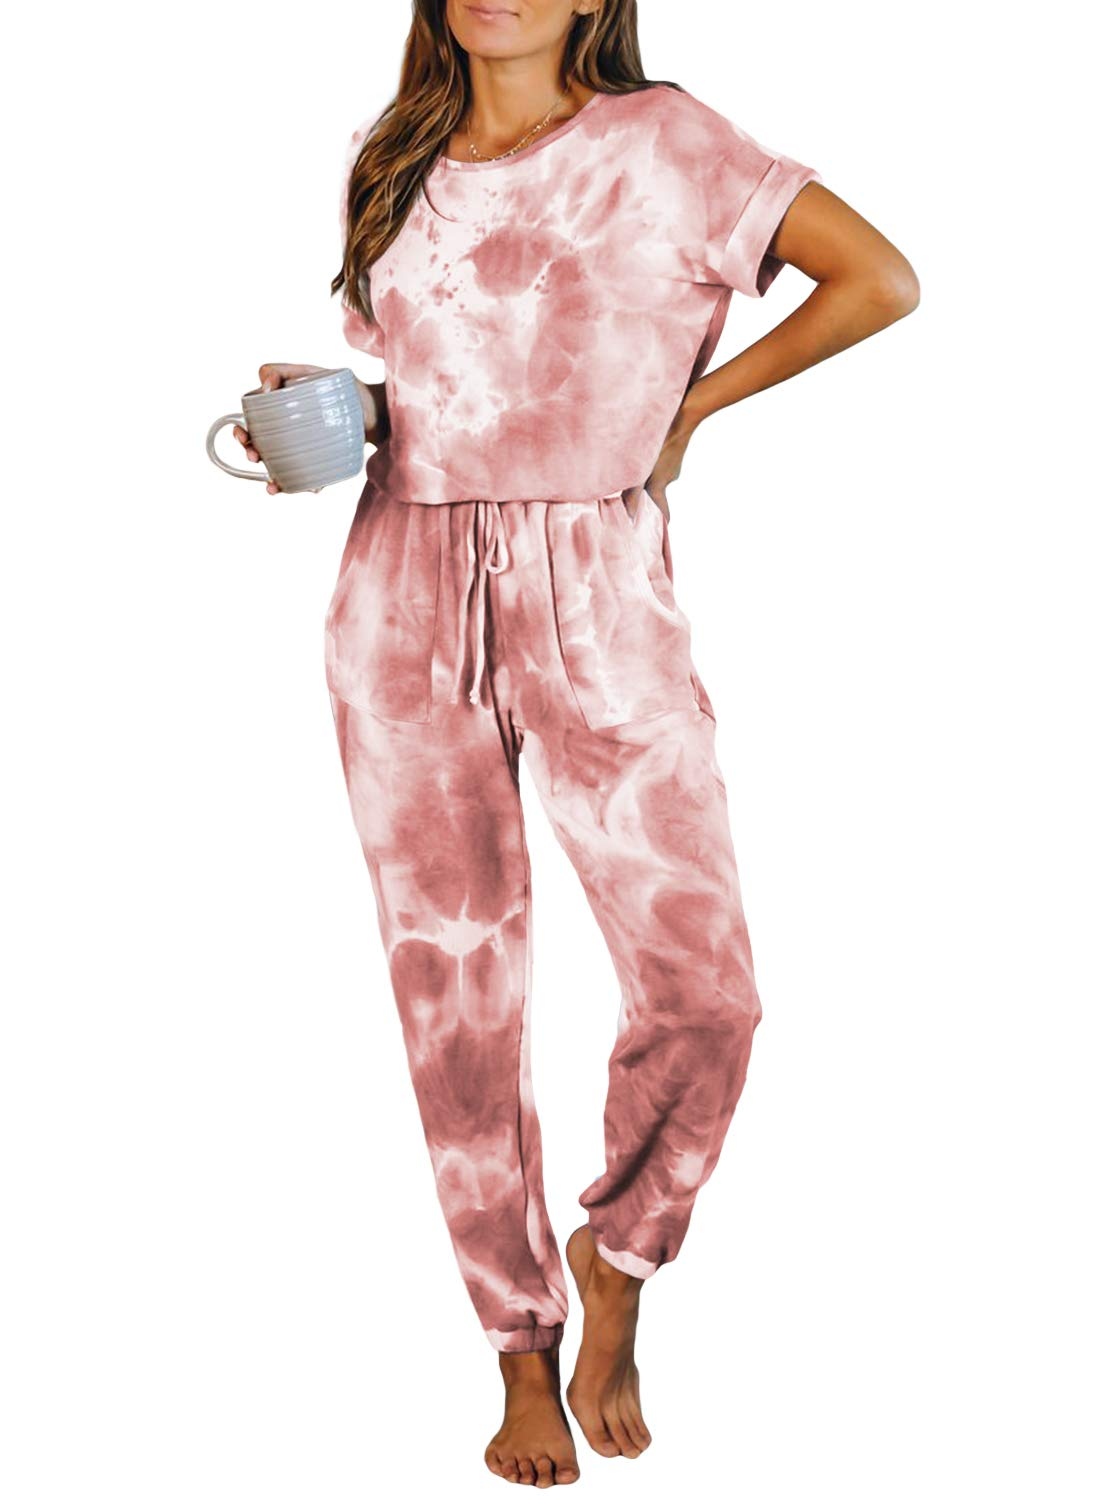 CANIKAT Women's Tie Dye Printed Crewneck Short Sleeve Jumpsuits Long Pants Nightwear Loungewear